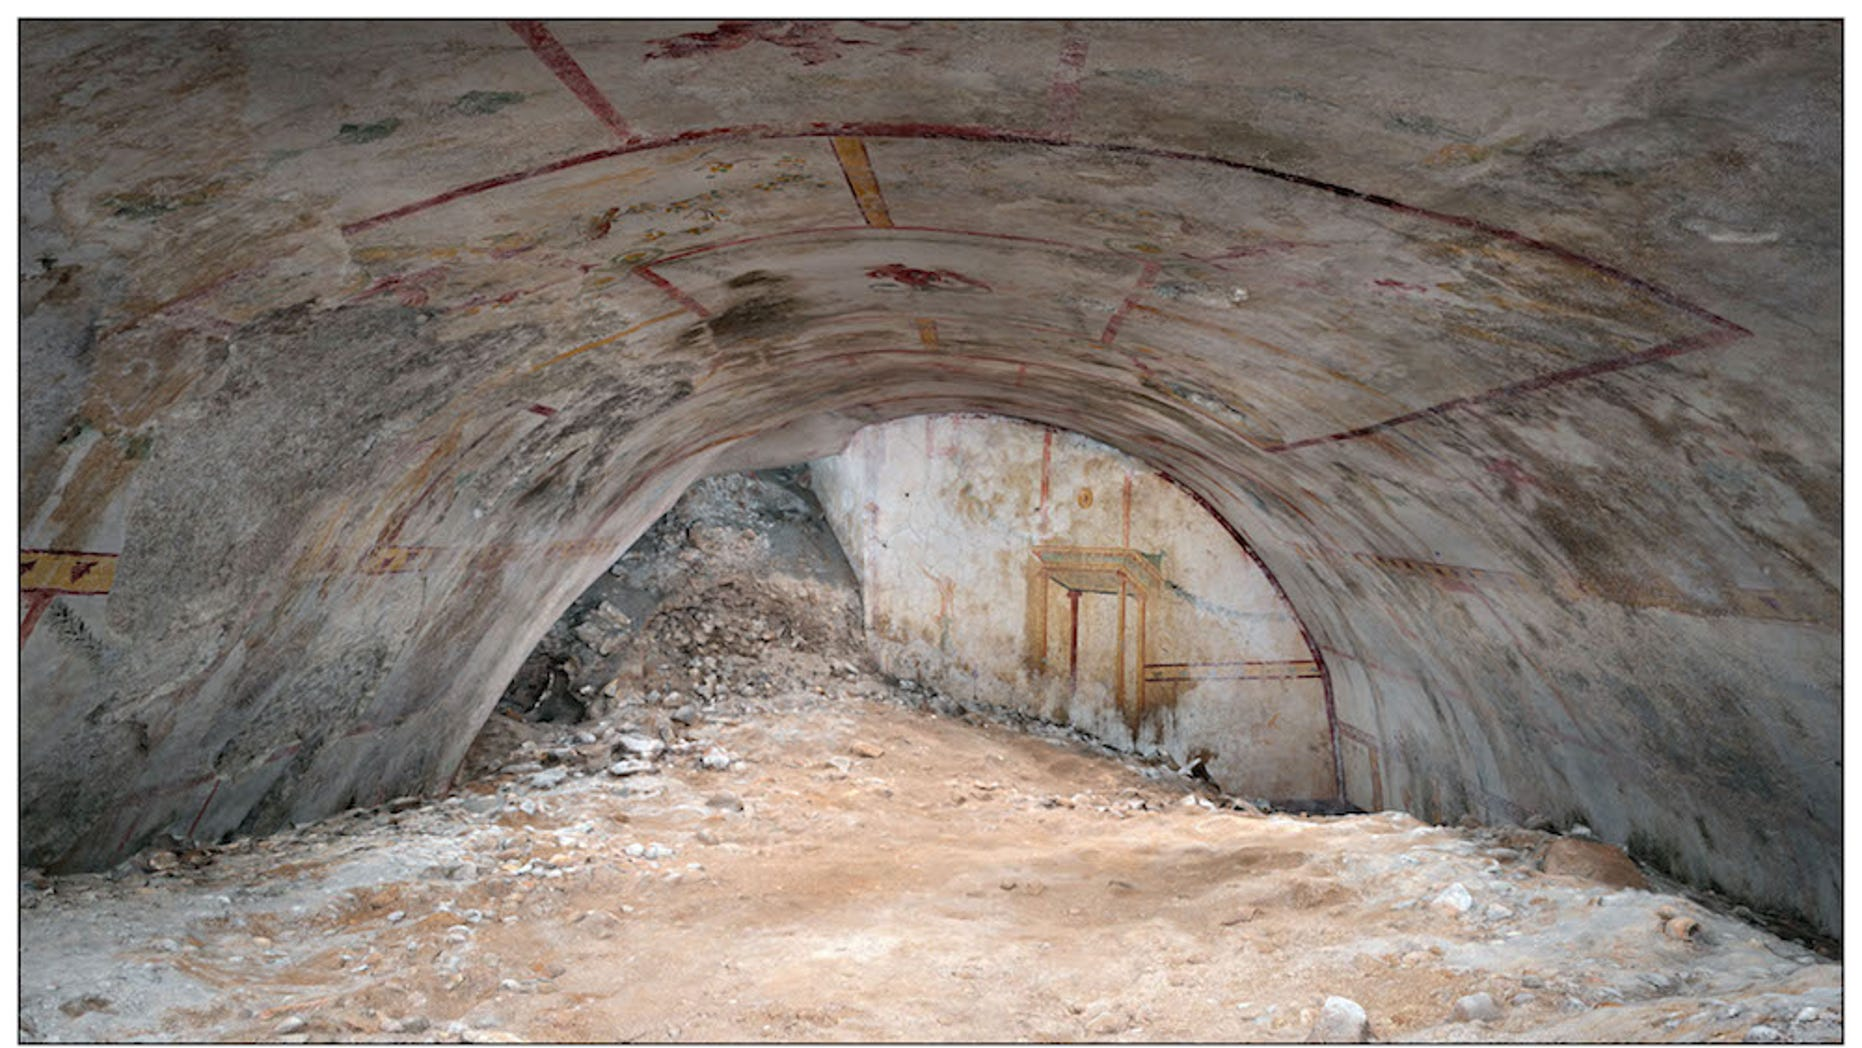 A hidden vault — filled with dirt and adorned with vivid paintings such as a centaur, a sphinx and an attacking panther — has been discovered in the ruins of Emperor Nero's ancient Roman palace.